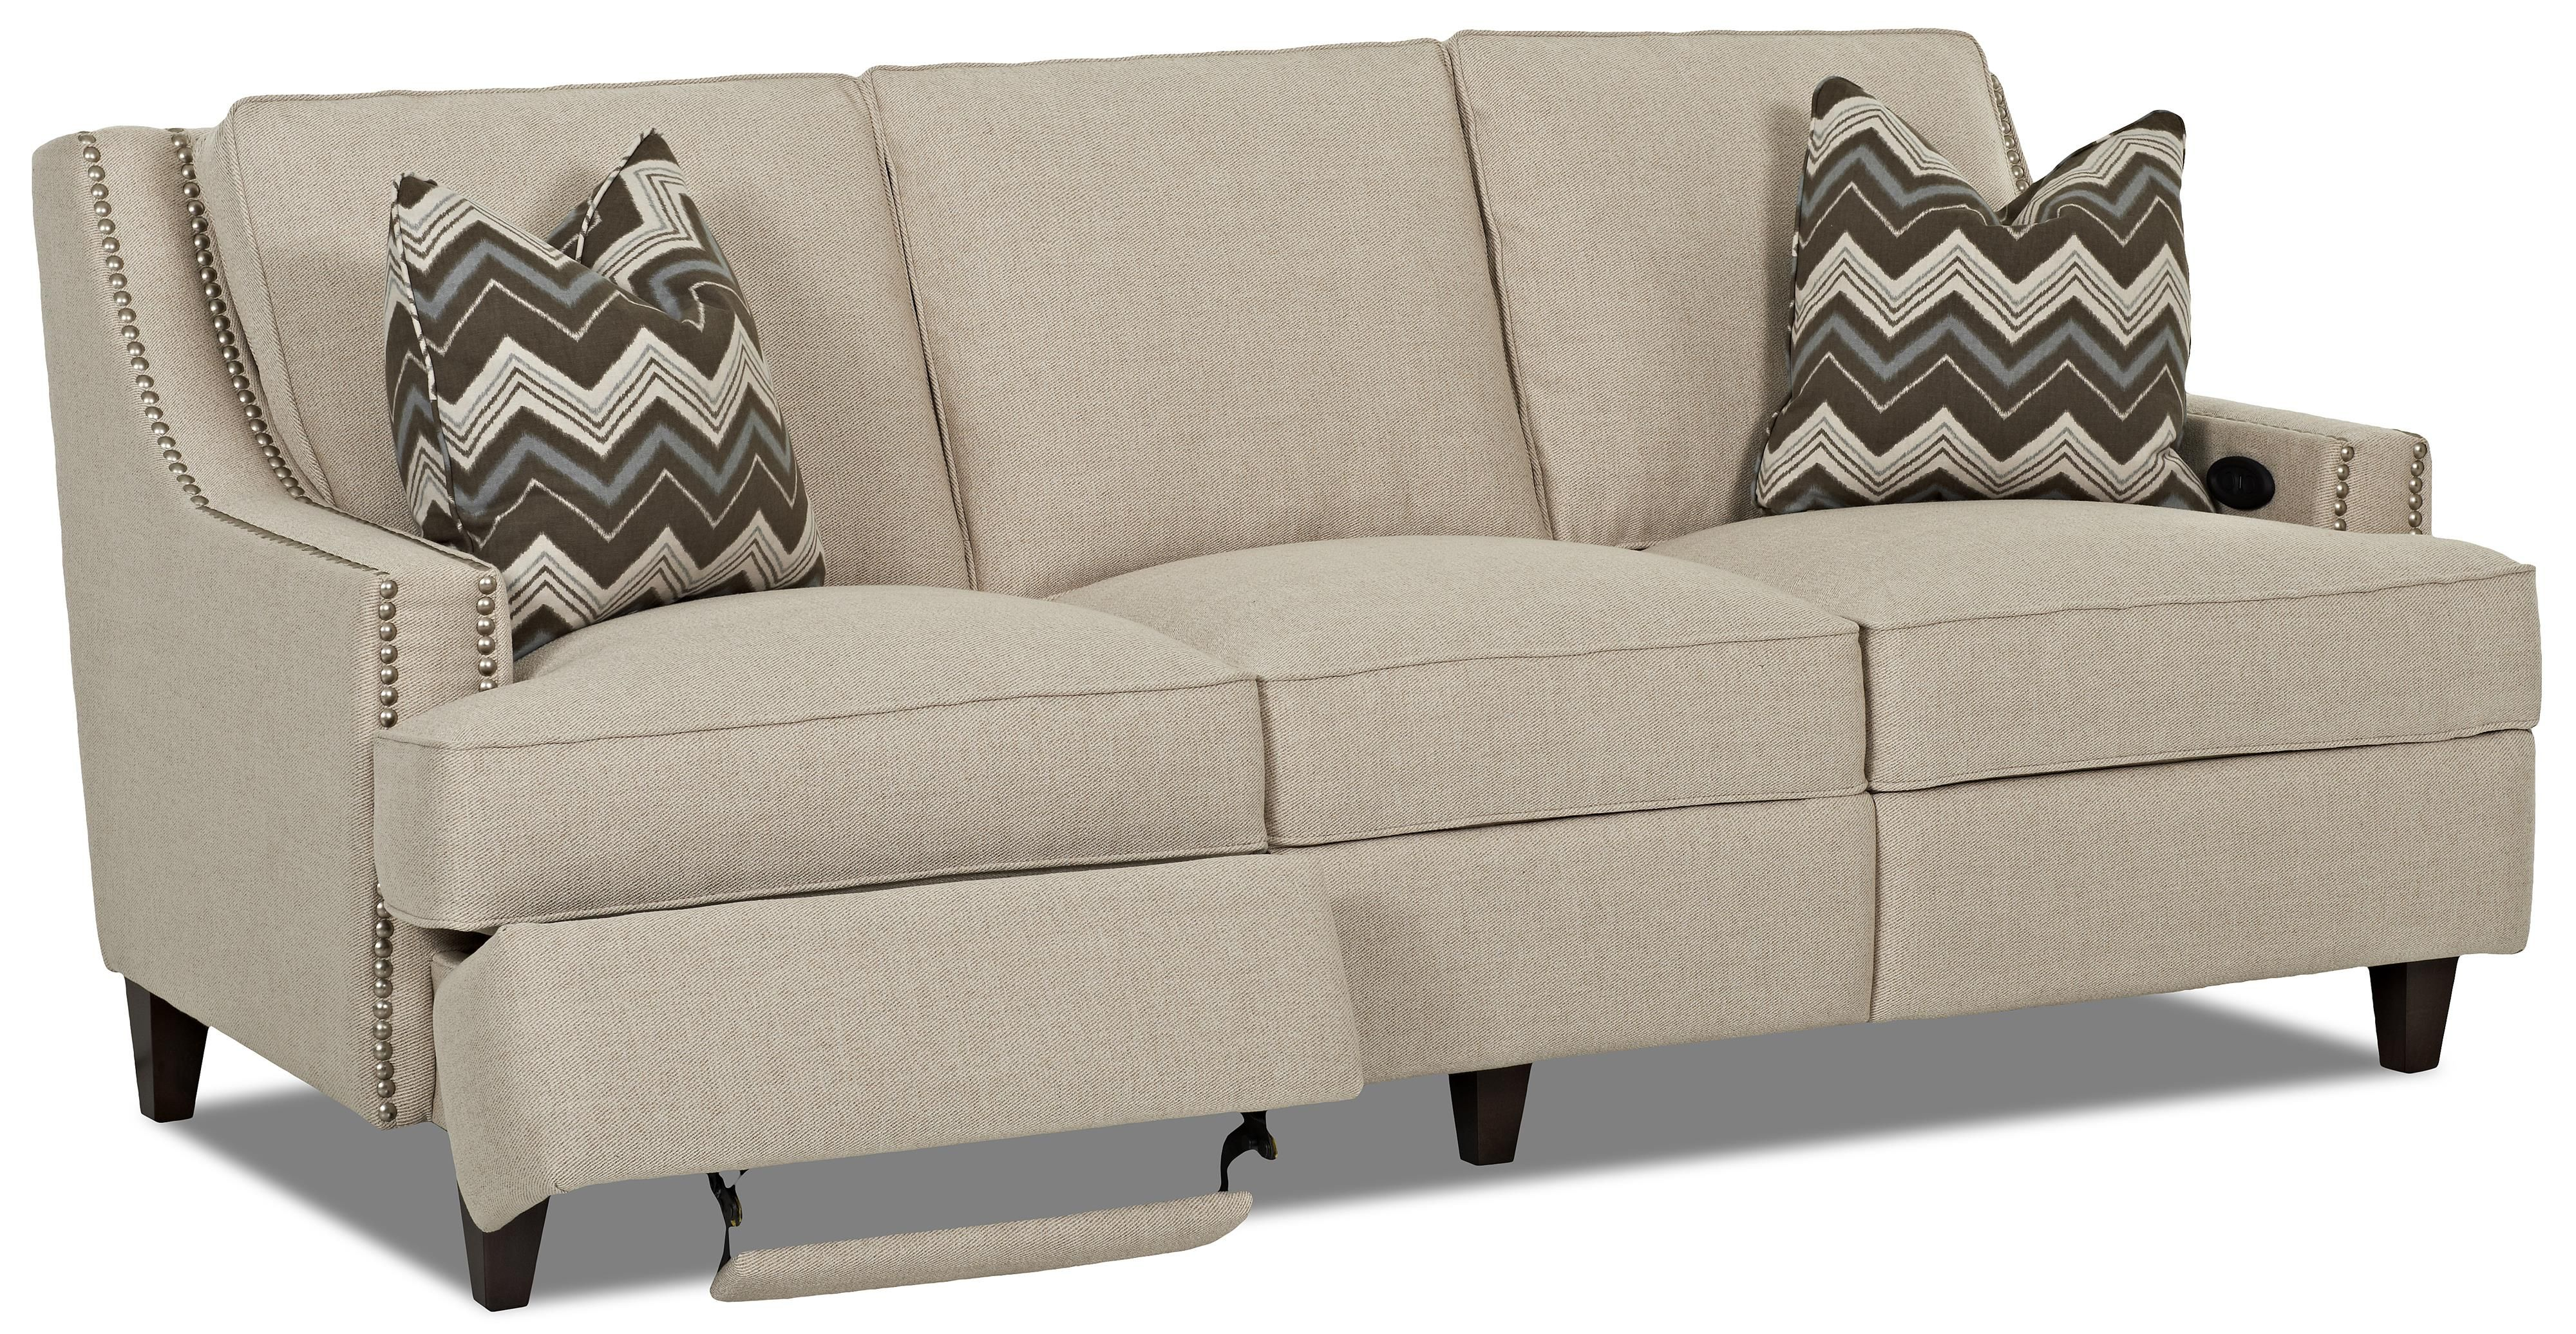 Transitional Power Hybrid Sofa Manufacturer Klaussner Width side